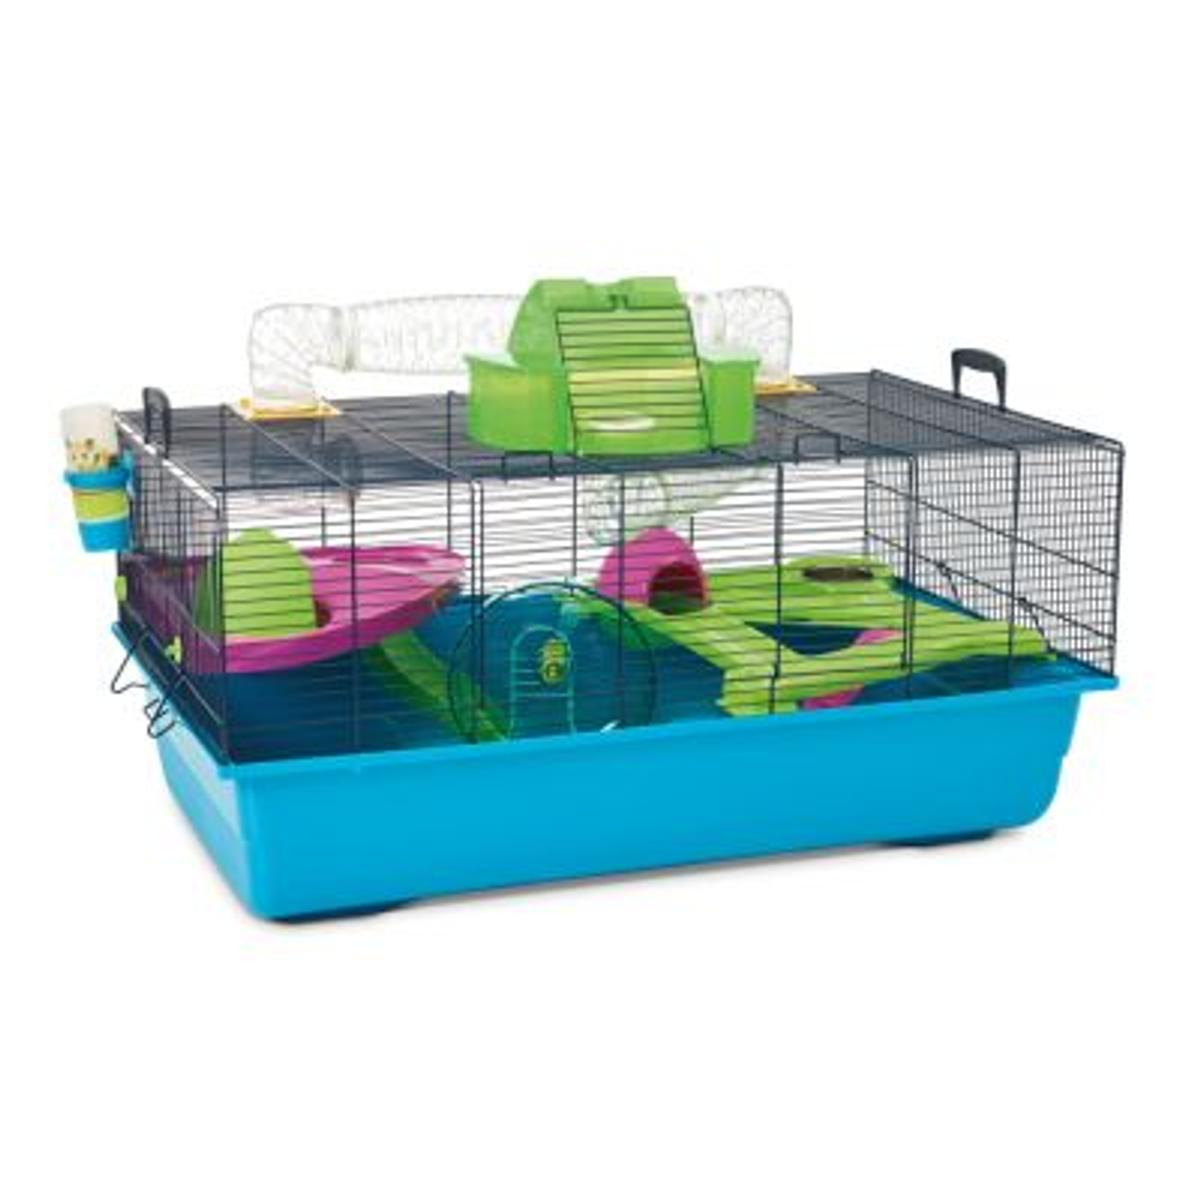 This spacious Savic hamster cage has everything your little hamster's heart desires. With lots of included accessories, this cage will be your hammy's dream home! Watch your hamster scurry through tunnels or nestle up in his very own roof-top penthouse. The extra-high base tray is great for burrowing and prevents litter flying out, so your hamster can dig to its heart's content. Hide small treats and snacks and watch your hamster dig them up!  BRAND NEW Blue: 80 x 50 x 50 cm (L x W x H)